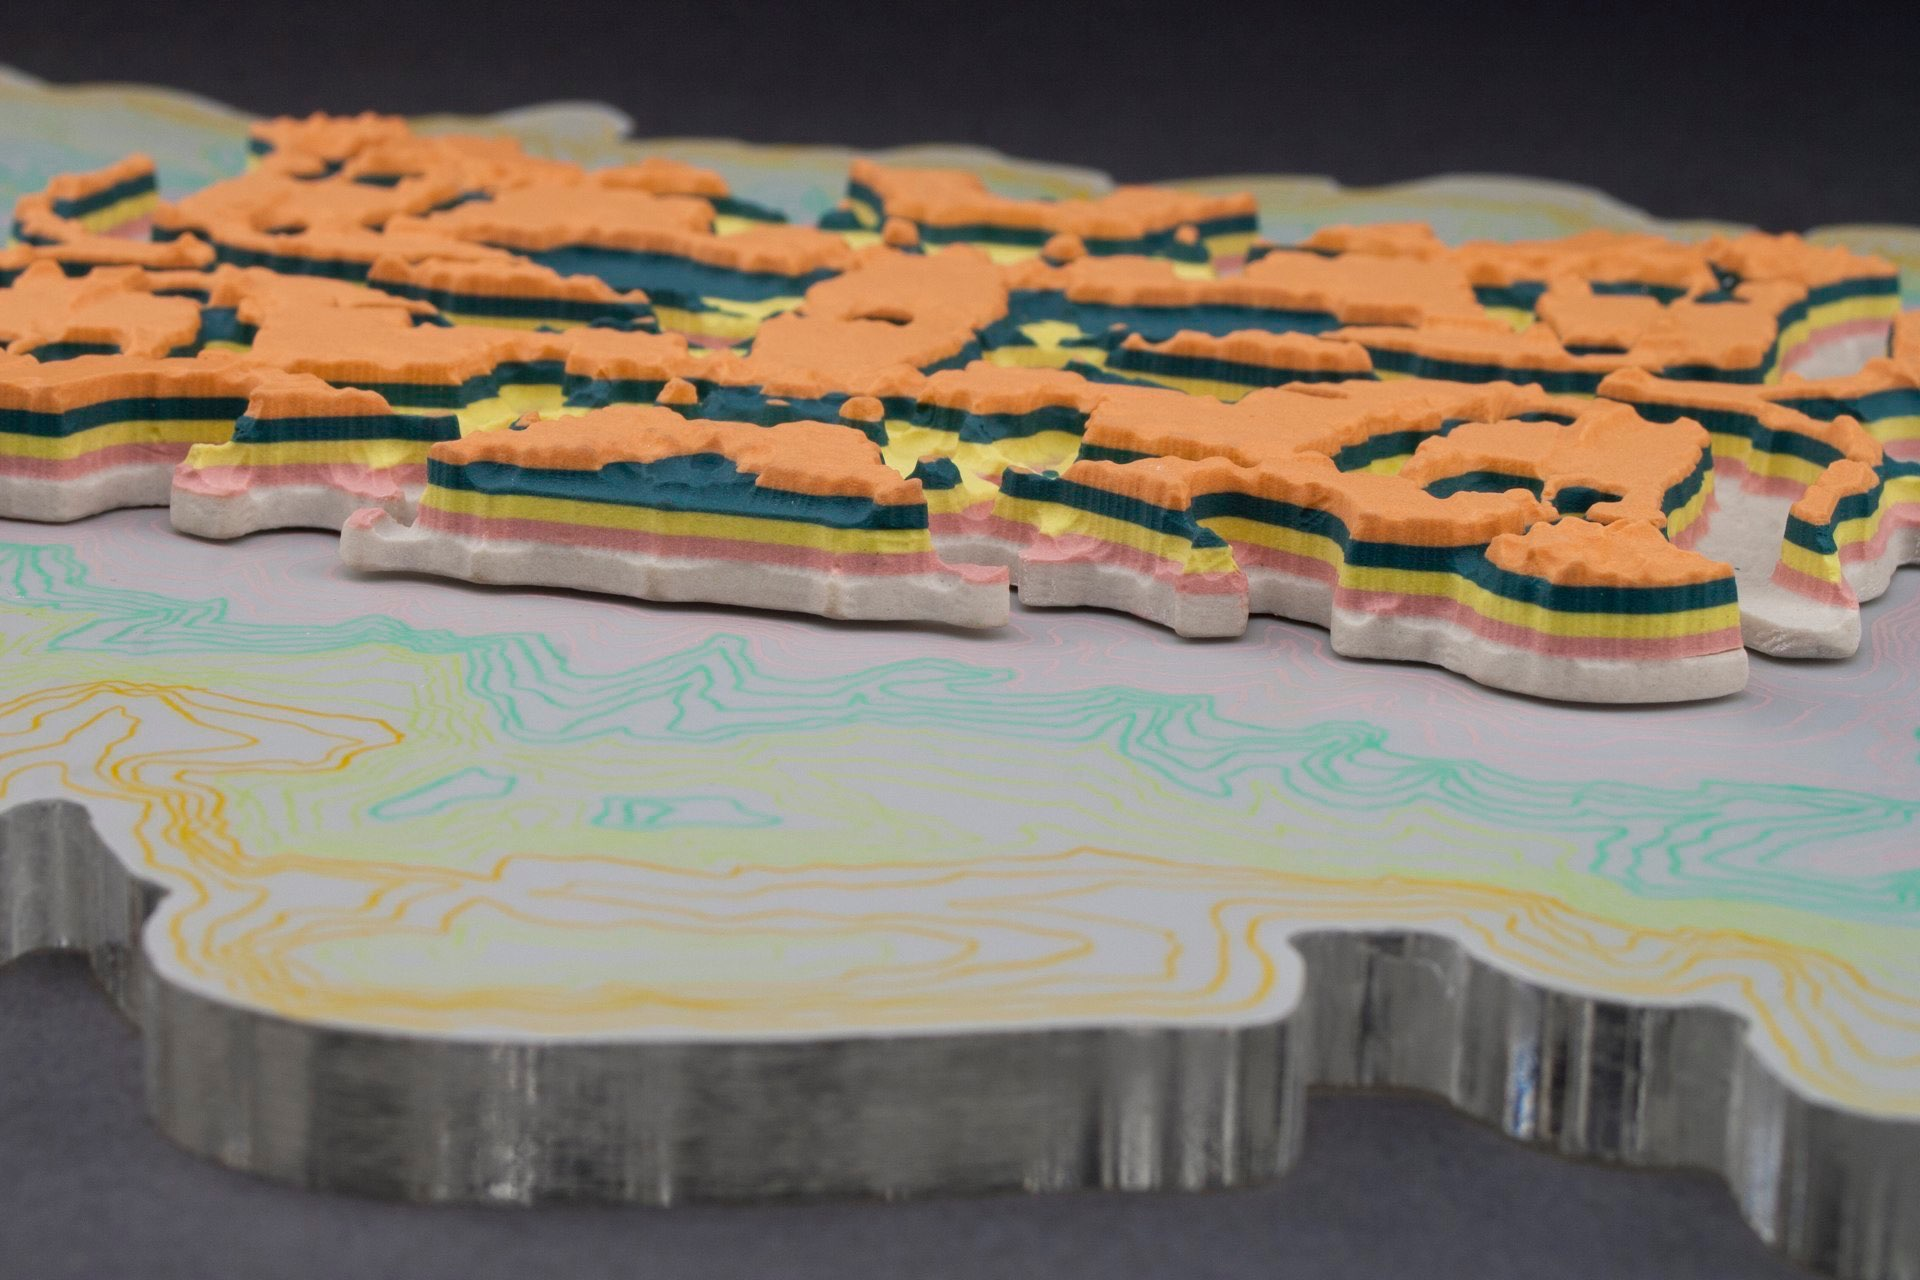 Fabricated Topography 09-11 (detail).jpg